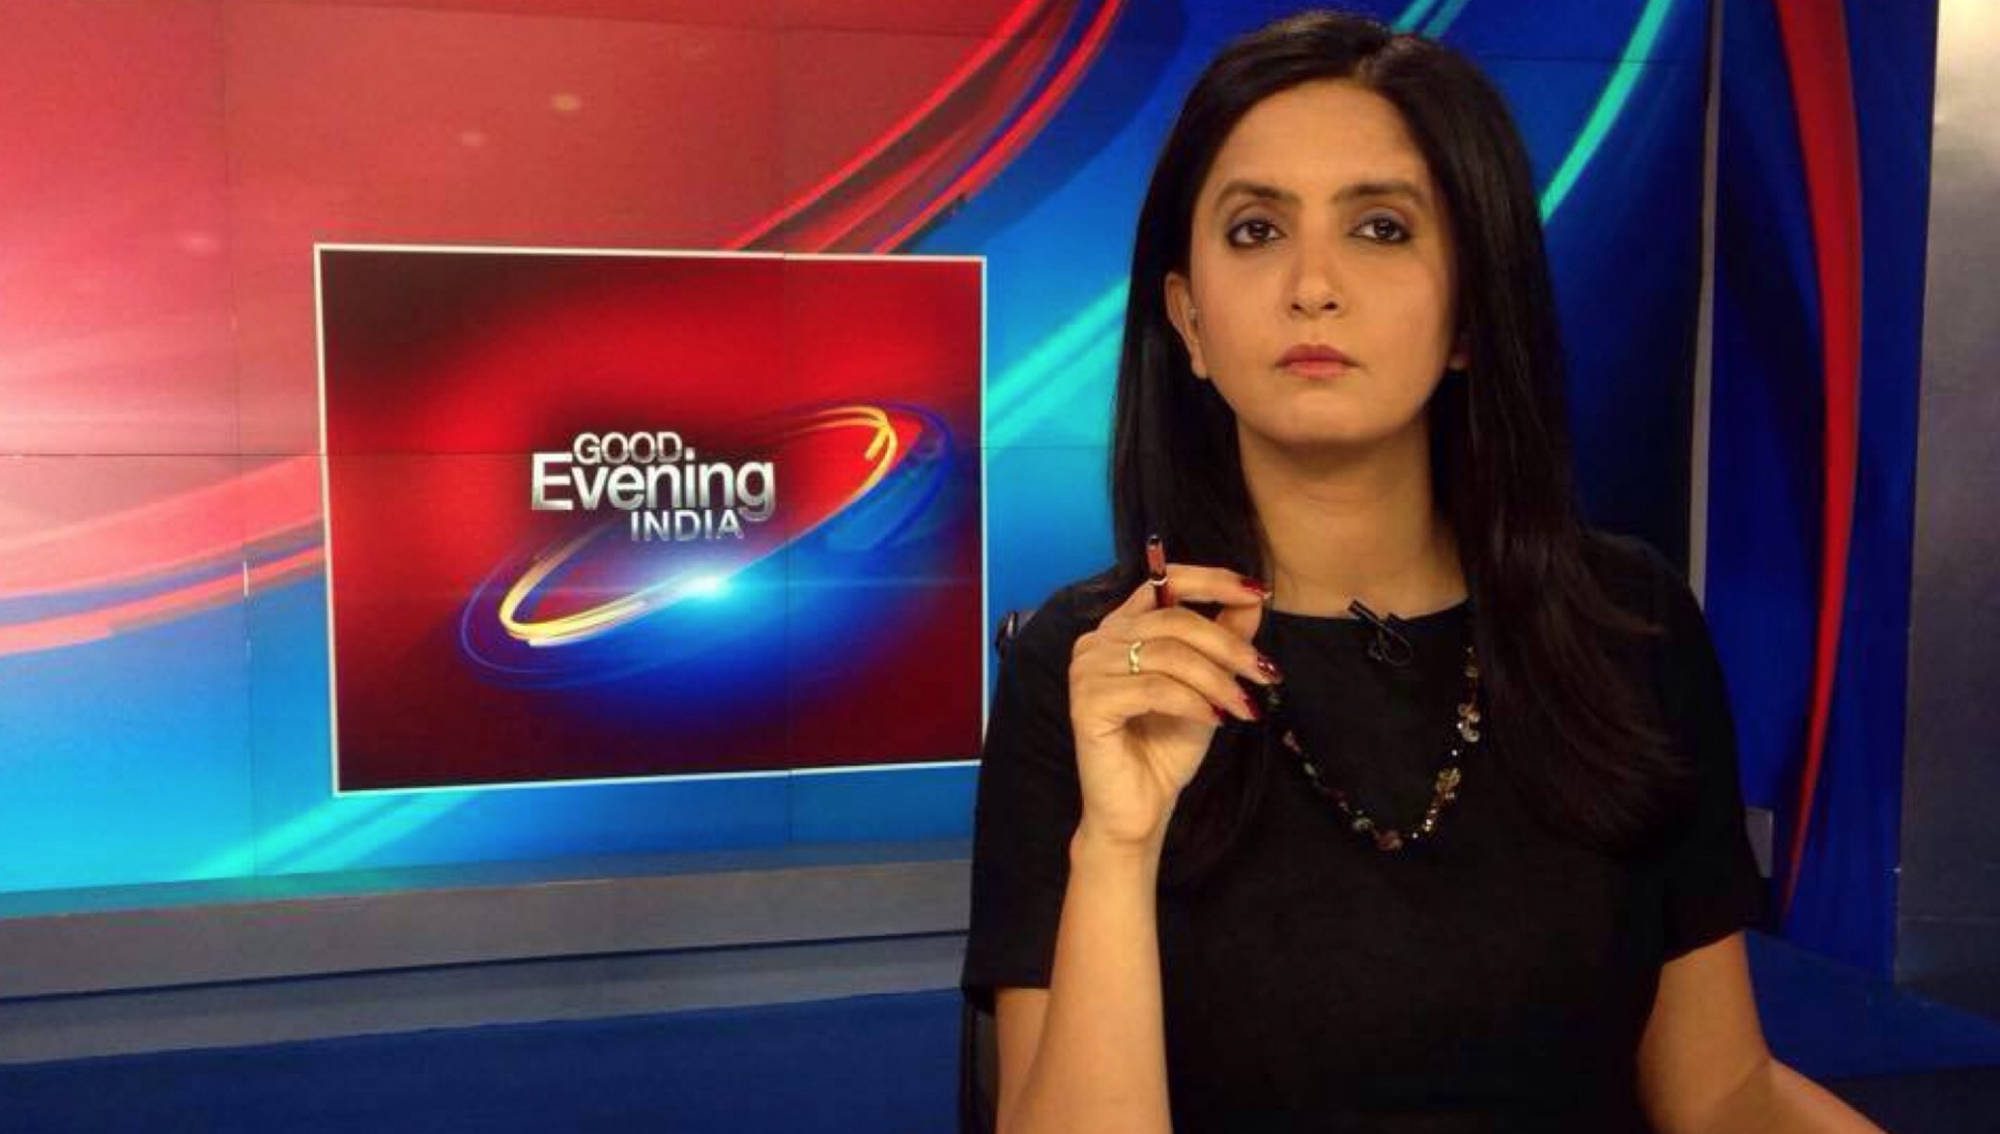 Anchal Vohra Middle East Correspondent, Reporter, Writer, Journalist, Analyst